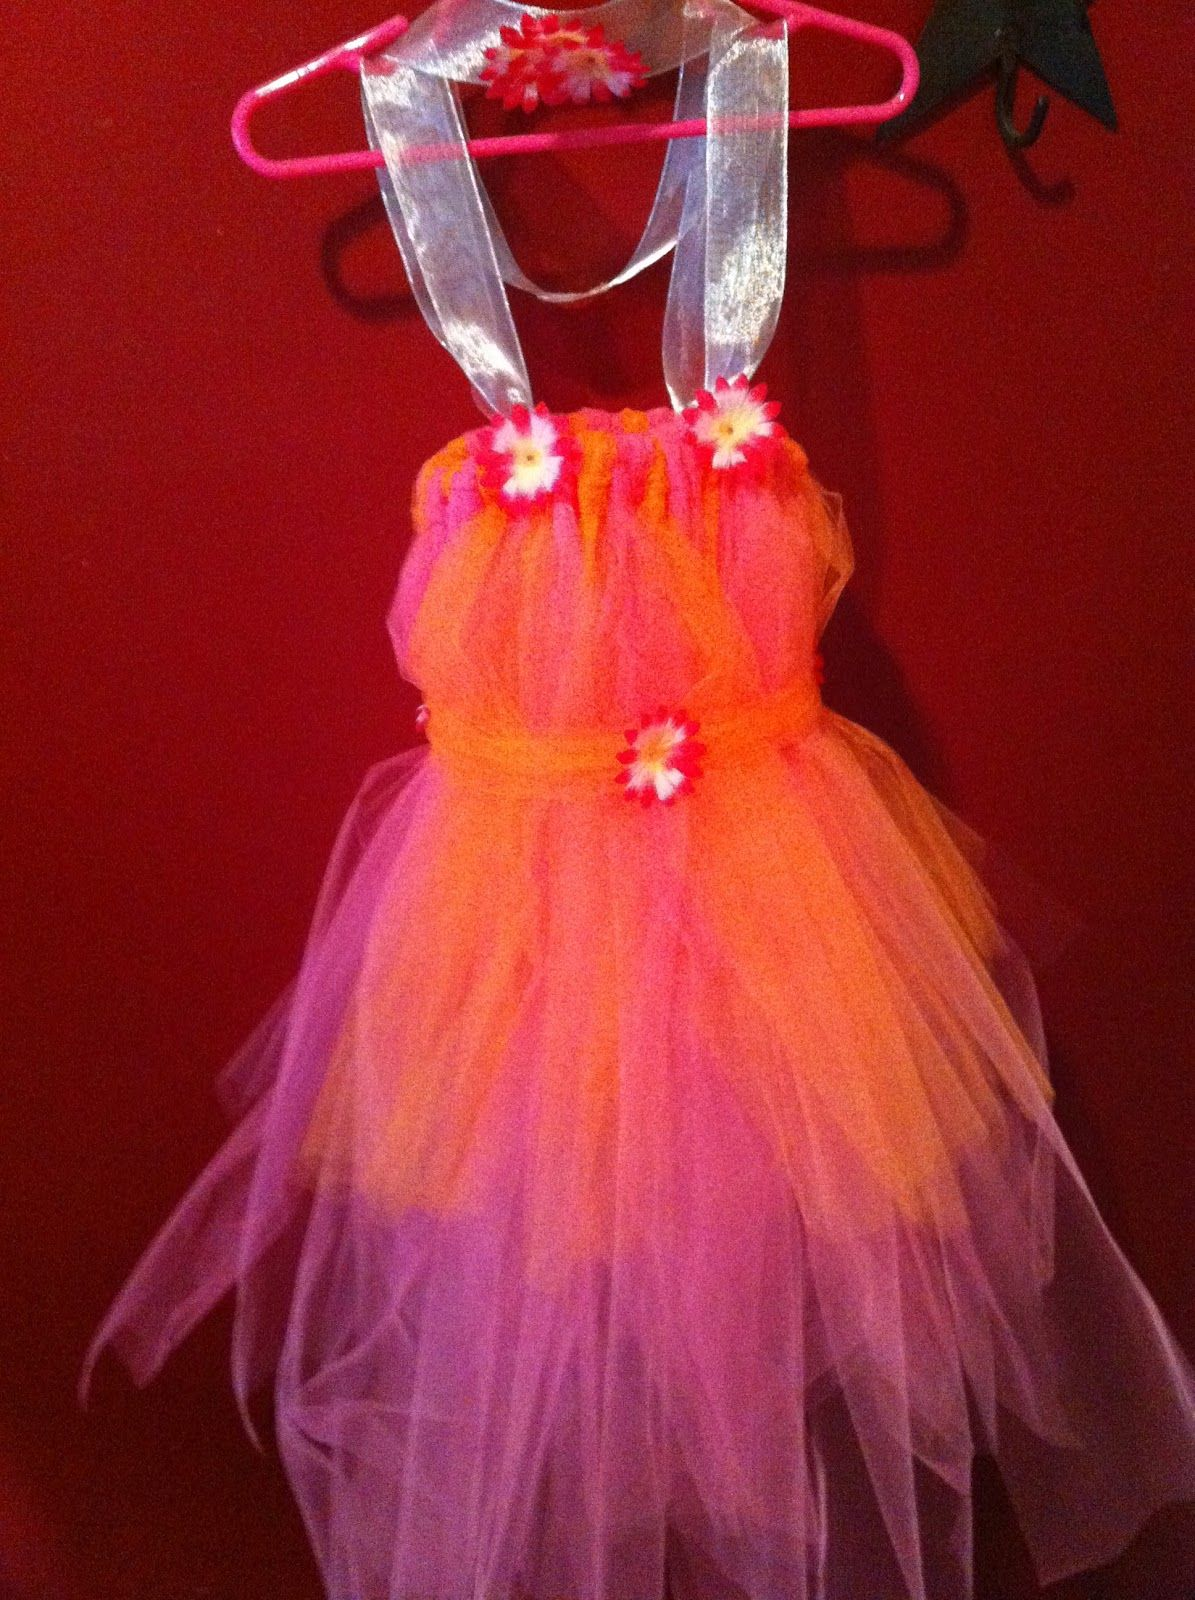 Buzy Bee Buzz: DIY Tutu Dress  double the tulle so it will be even fuller